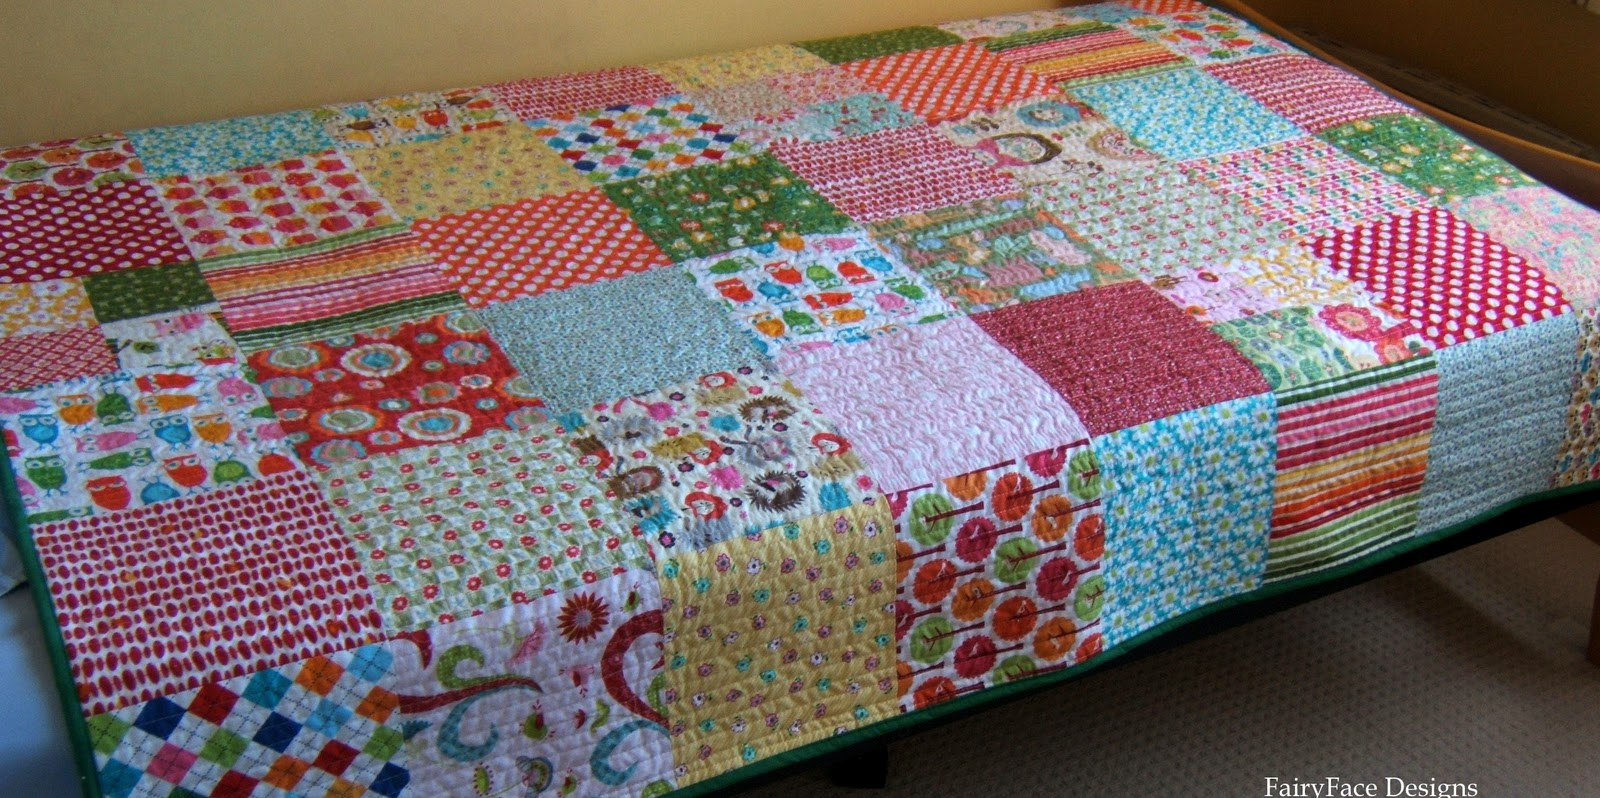 After deciding which quilt size best fits your bed add approximately 6